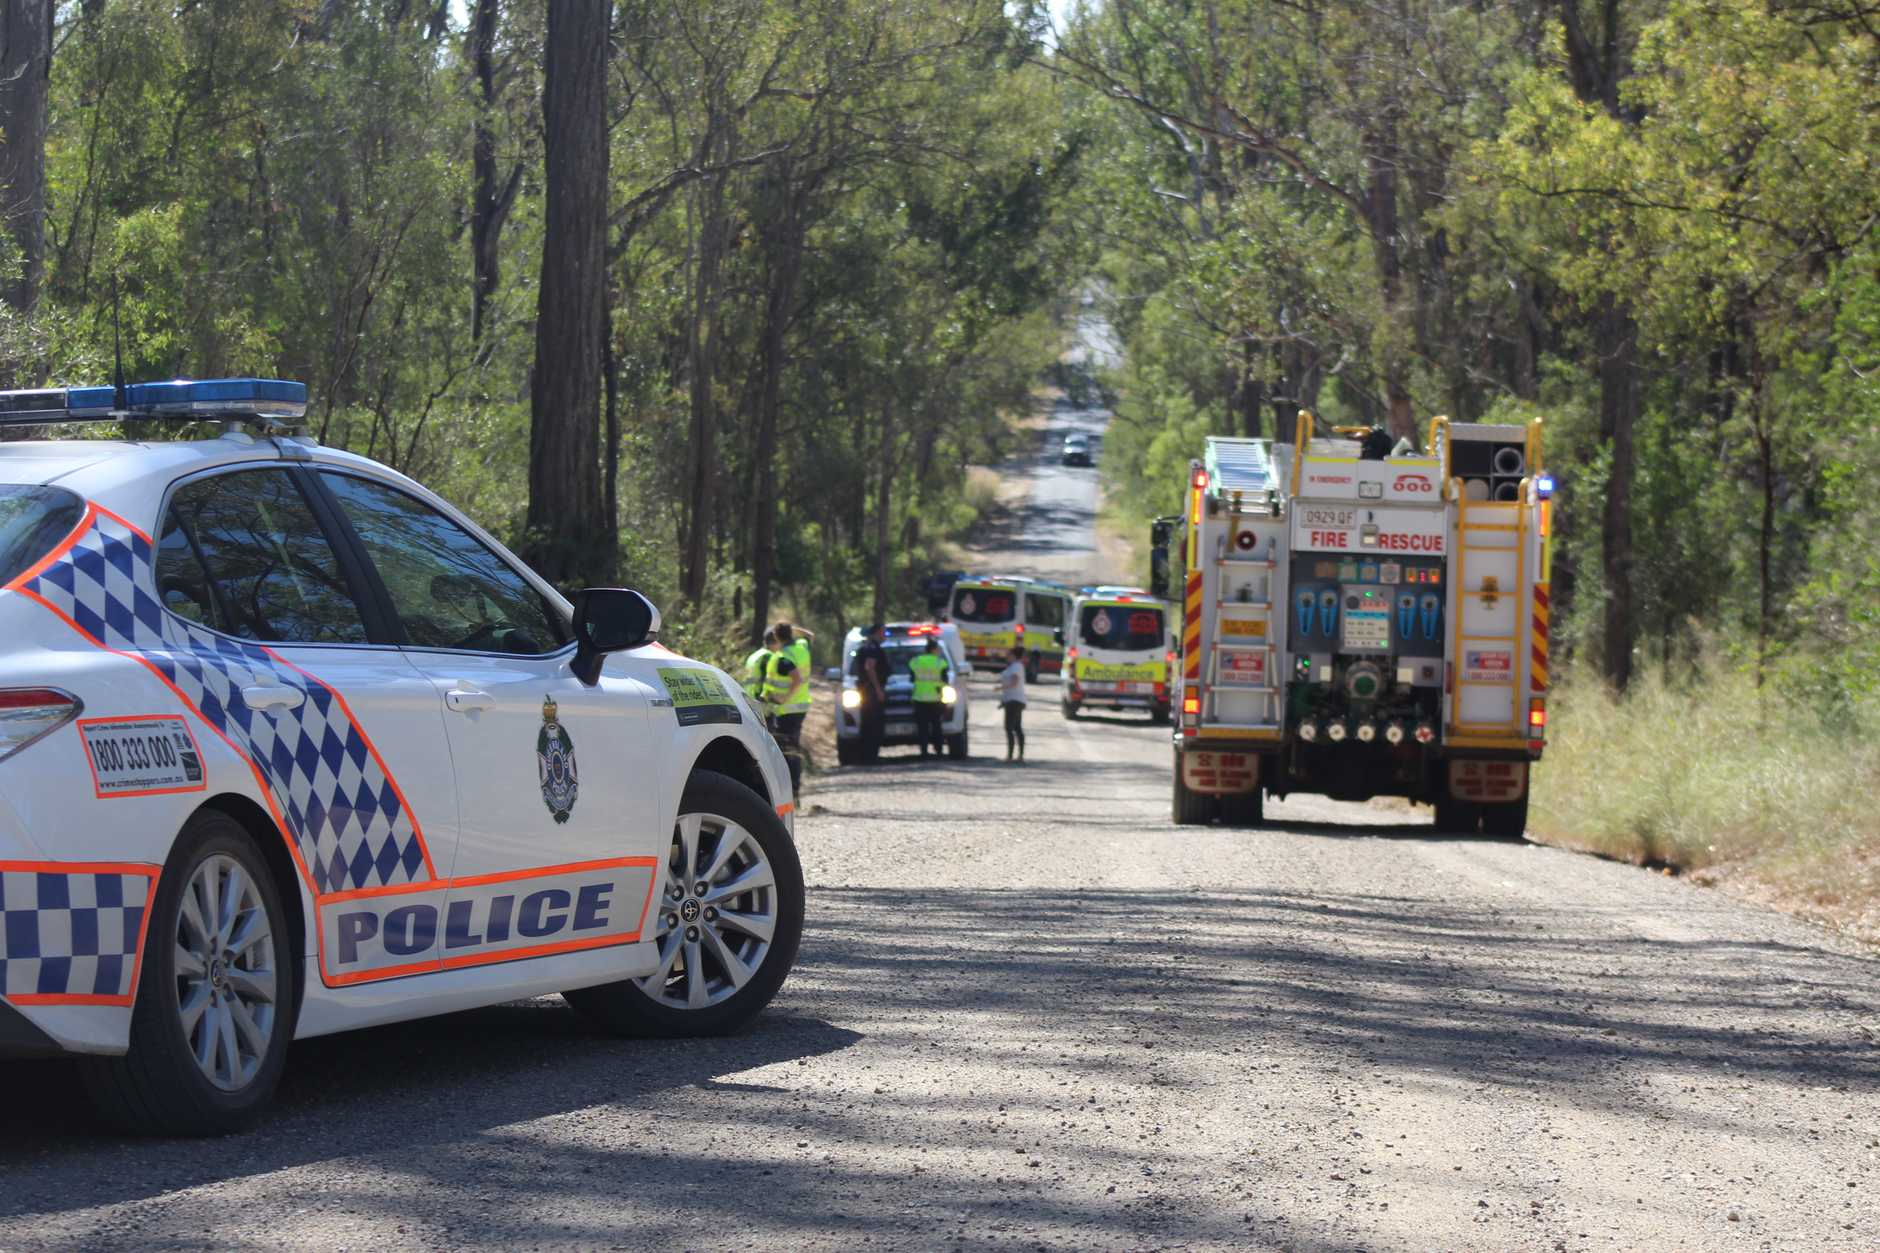 A person was injured in a motorbike crash near Kingaroy.